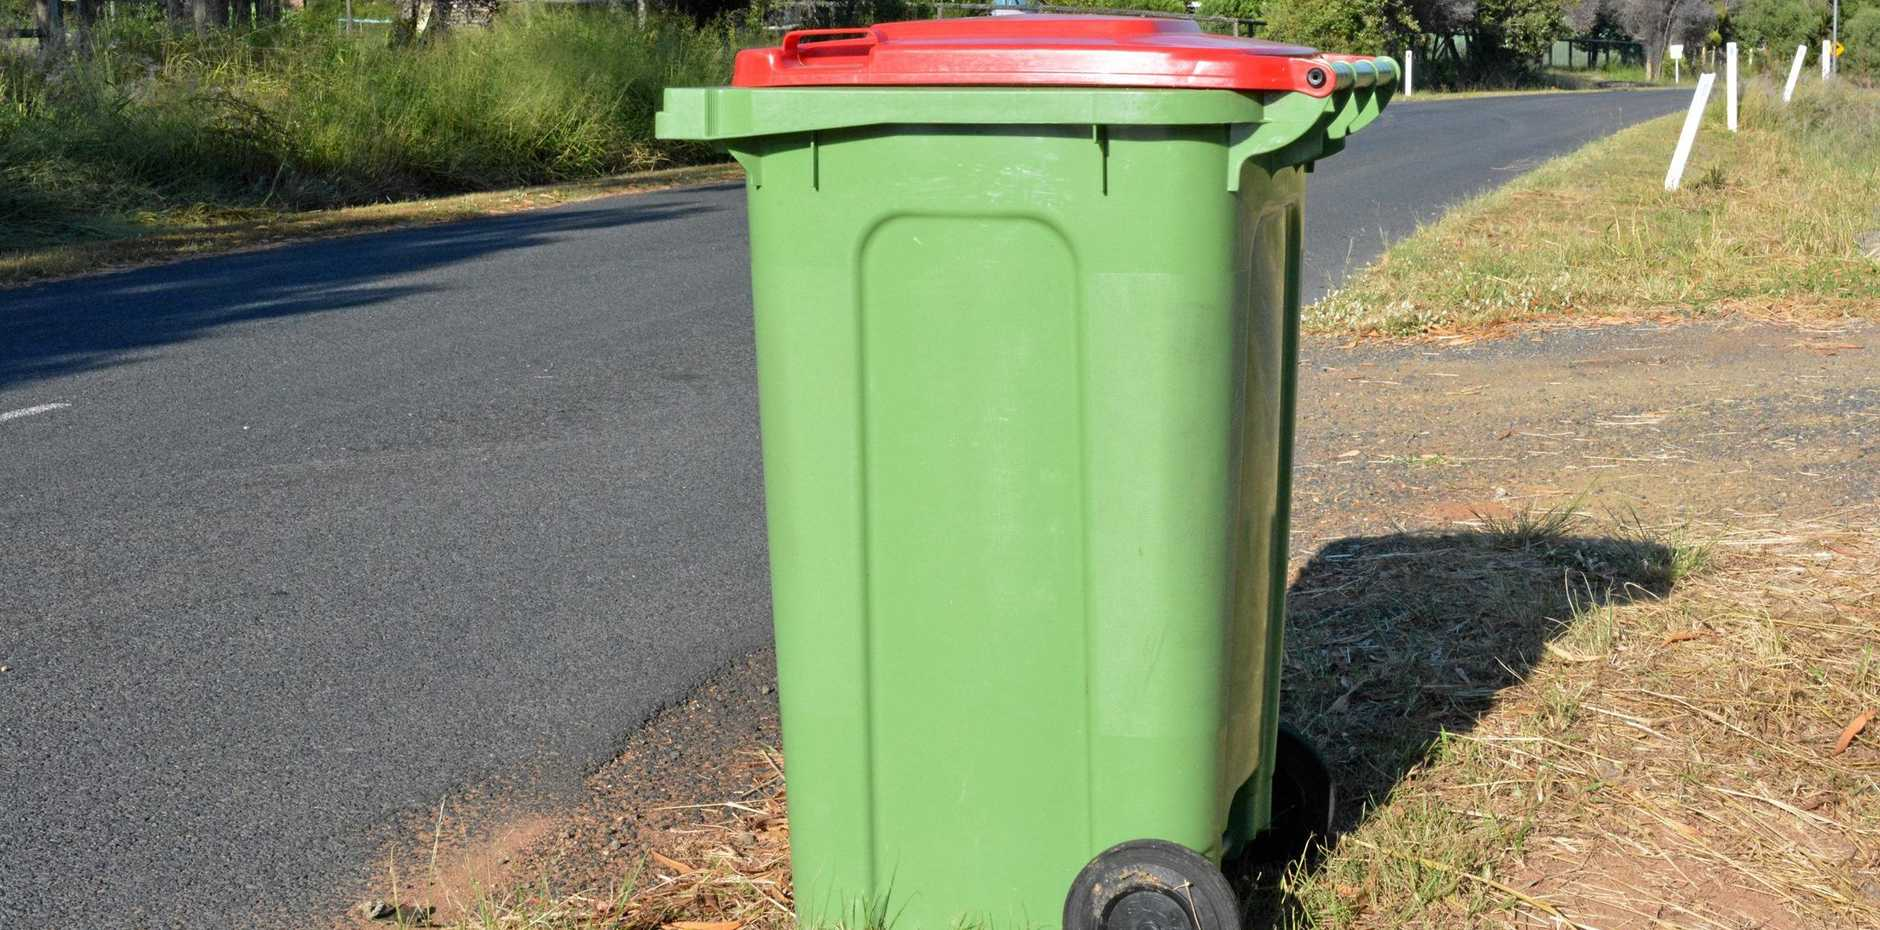 NEIGHBOURLY DISPUTE: A 51-year-old Eerwah Vale man assaulted his neighbour over a dispute that stemmed from wheelie bins being placed on an easement.